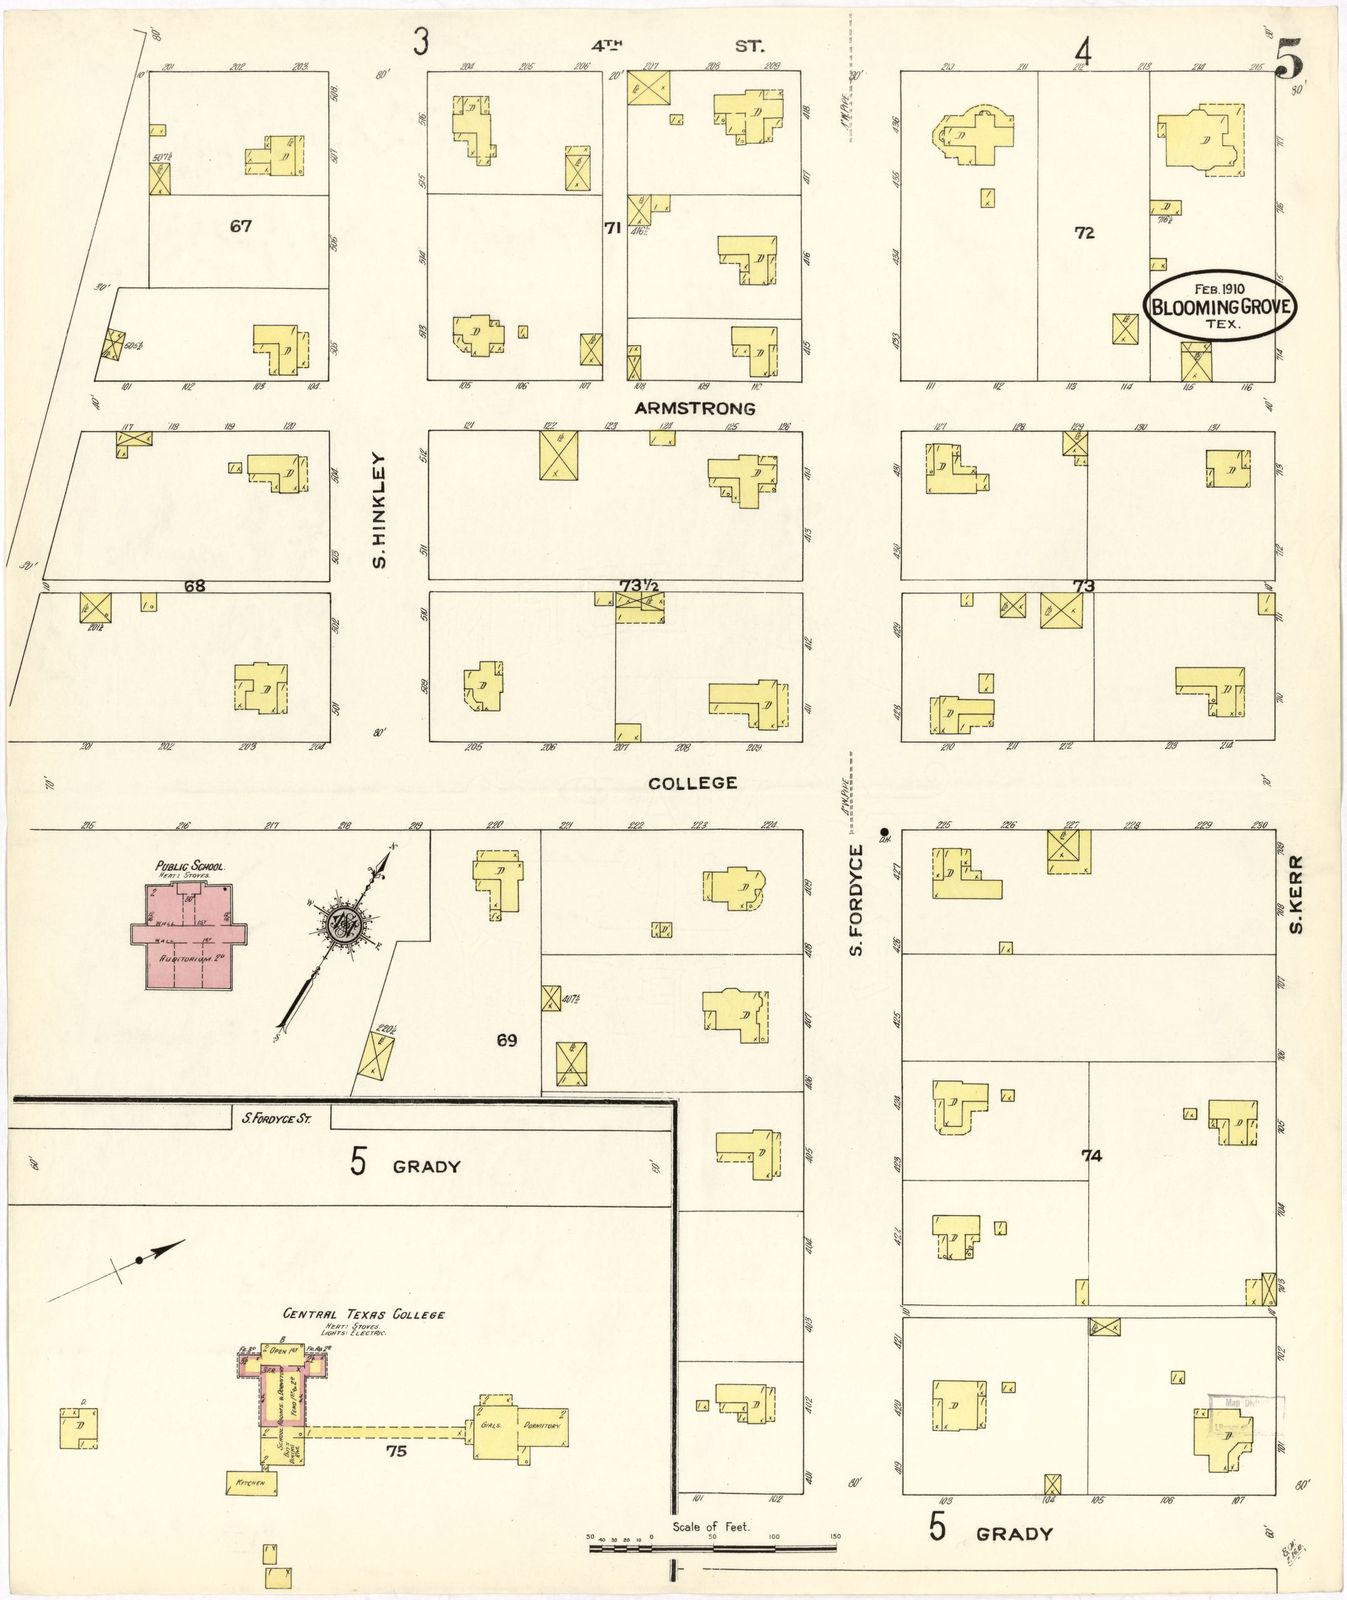 Map Of Central Texas Counties.Sanborn Fire Insurance Map From Blooming Grove Navarro County